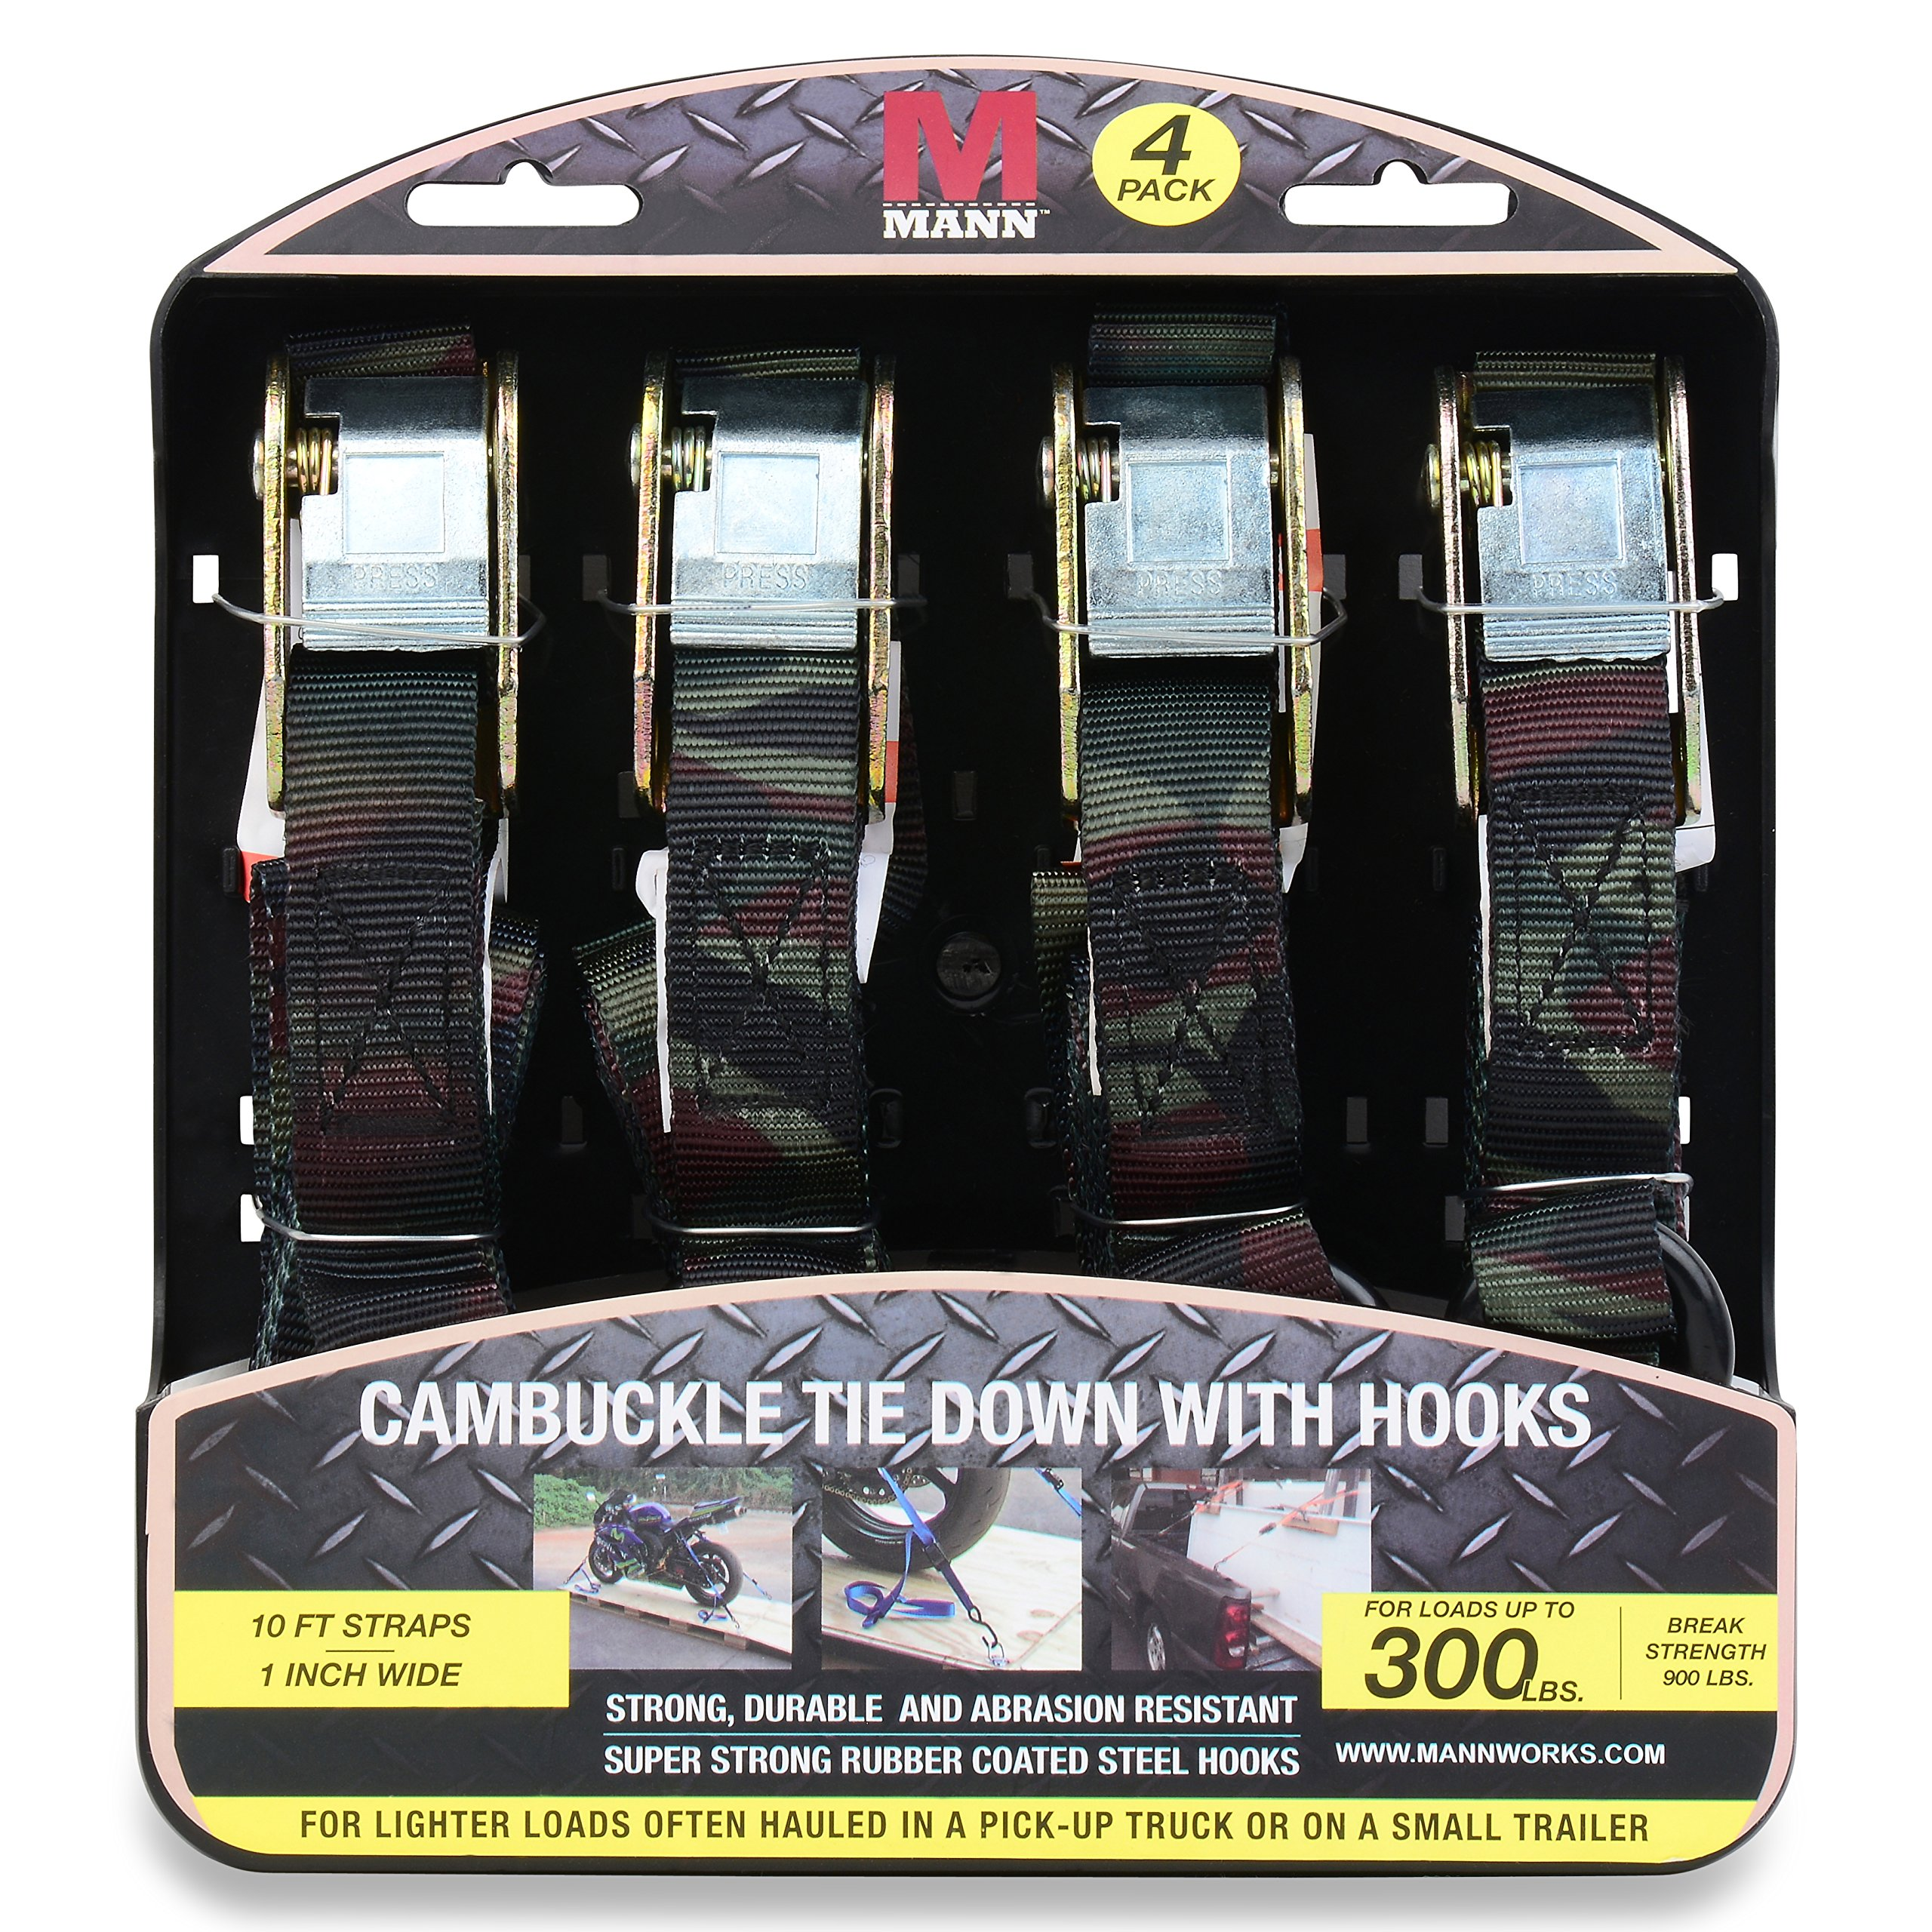 Mann Cambuckle Tie Down Straps with S-hooks 4-Pack Set 1 Inch x 10 Feet 300 Pound Load Capacity 900 Pound Break Strength (Camo)